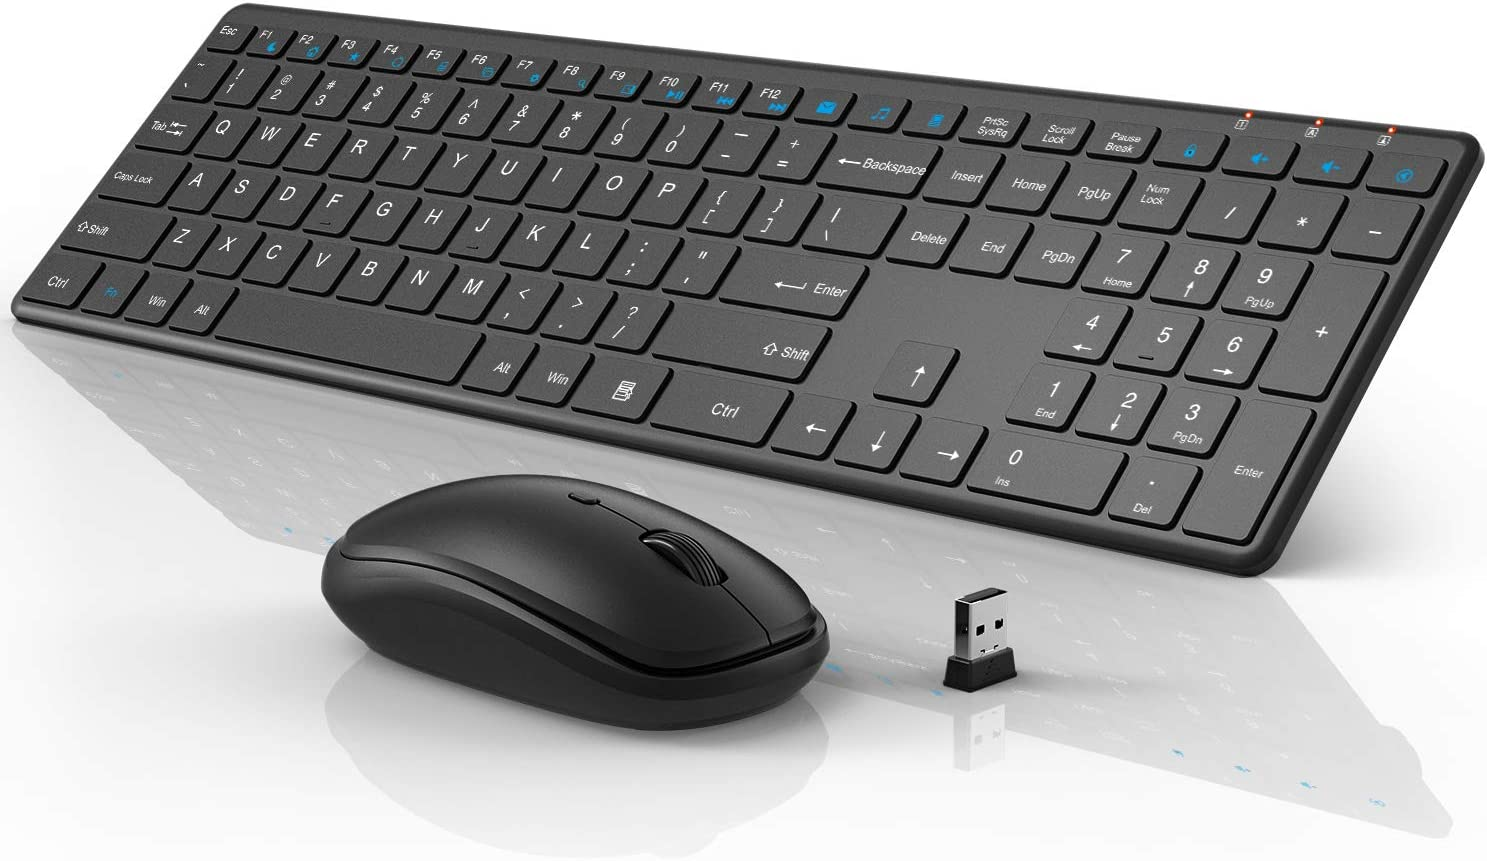 Keyboard Mouse Set Computer Keyboard Notebook Keyboard Wired and Wireless Black-Wired